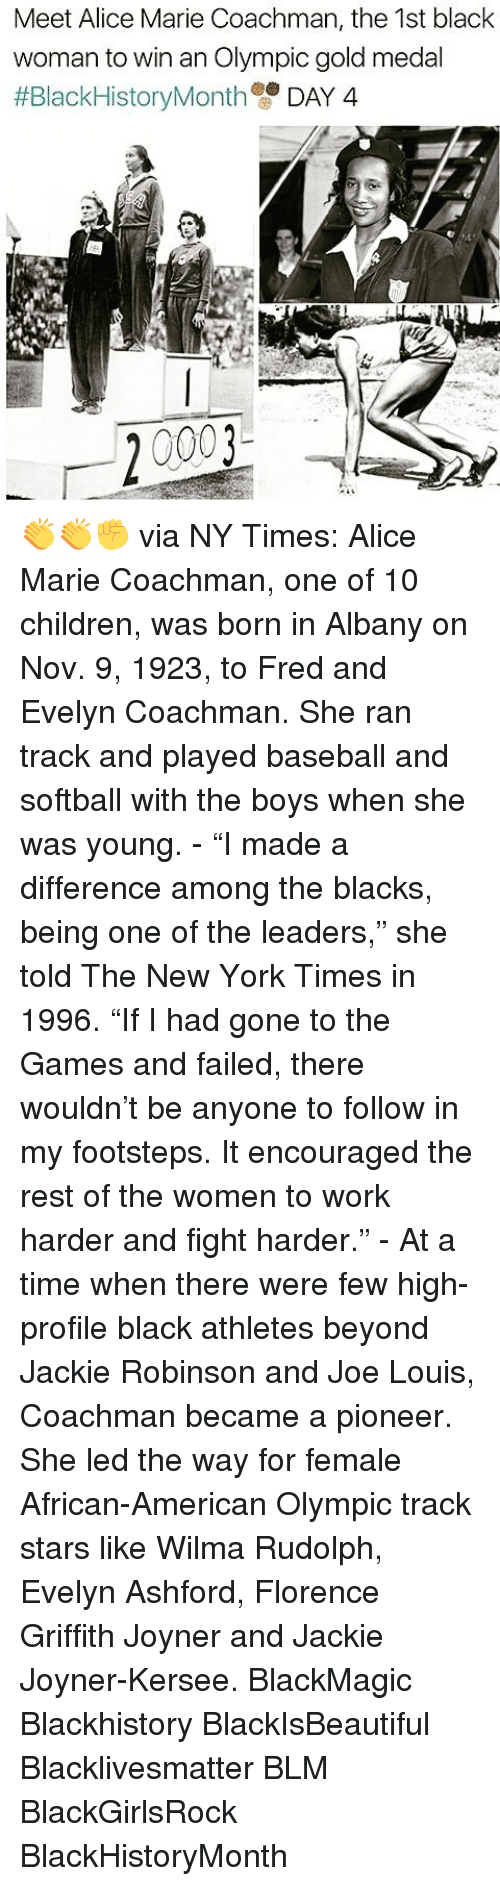 "Memes, Jackie Robinson, and New York Times: Meet Alice Marie Coachman, the 1st black  woman to win an Olympic gold medal  #Black HistoryMonth  DAY 4  20003 👏👏✊ via NY Times: Alice Marie Coachman, one of 10 children, was born in Albany on Nov. 9, 1923, to Fred and Evelyn Coachman. She ran track and played baseball and softball with the boys when she was young. - ""I made a difference among the blacks, being one of the leaders,"" she told The New York Times in 1996. ""If I had gone to the Games and failed, there wouldn't be anyone to follow in my footsteps. It encouraged the rest of the women to work harder and fight harder."" - At a time when there were few high-profile black athletes beyond Jackie Robinson and Joe Louis, Coachman became a pioneer. She led the way for female African-American Olympic track stars like Wilma Rudolph, Evelyn Ashford, Florence Griffith Joyner and Jackie Joyner-Kersee. BlackMagic Blackhistory BlackIsBeautiful Blacklivesmatter BLM BlackGirlsRock BlackHistoryMonth"